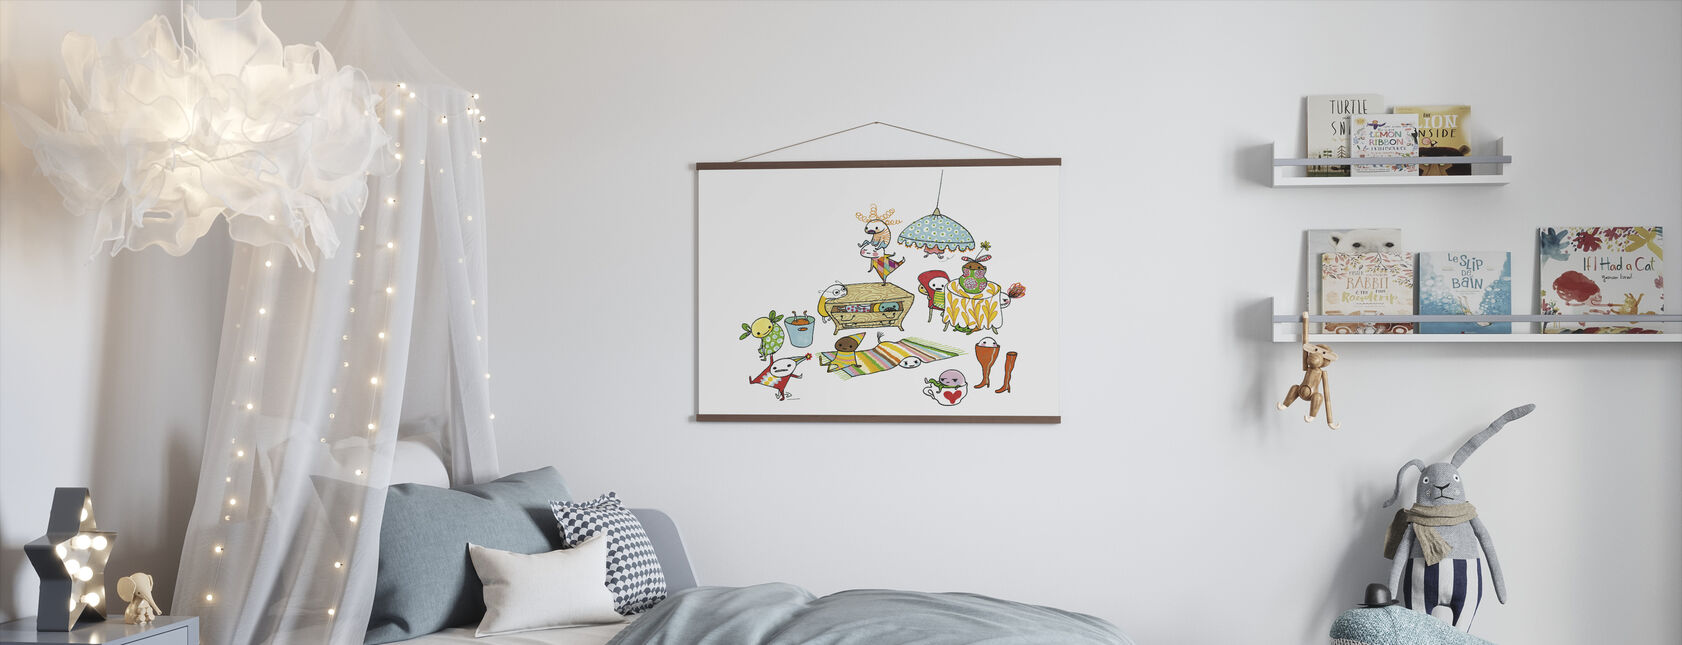 Motley Bus - Poster - Kids Room